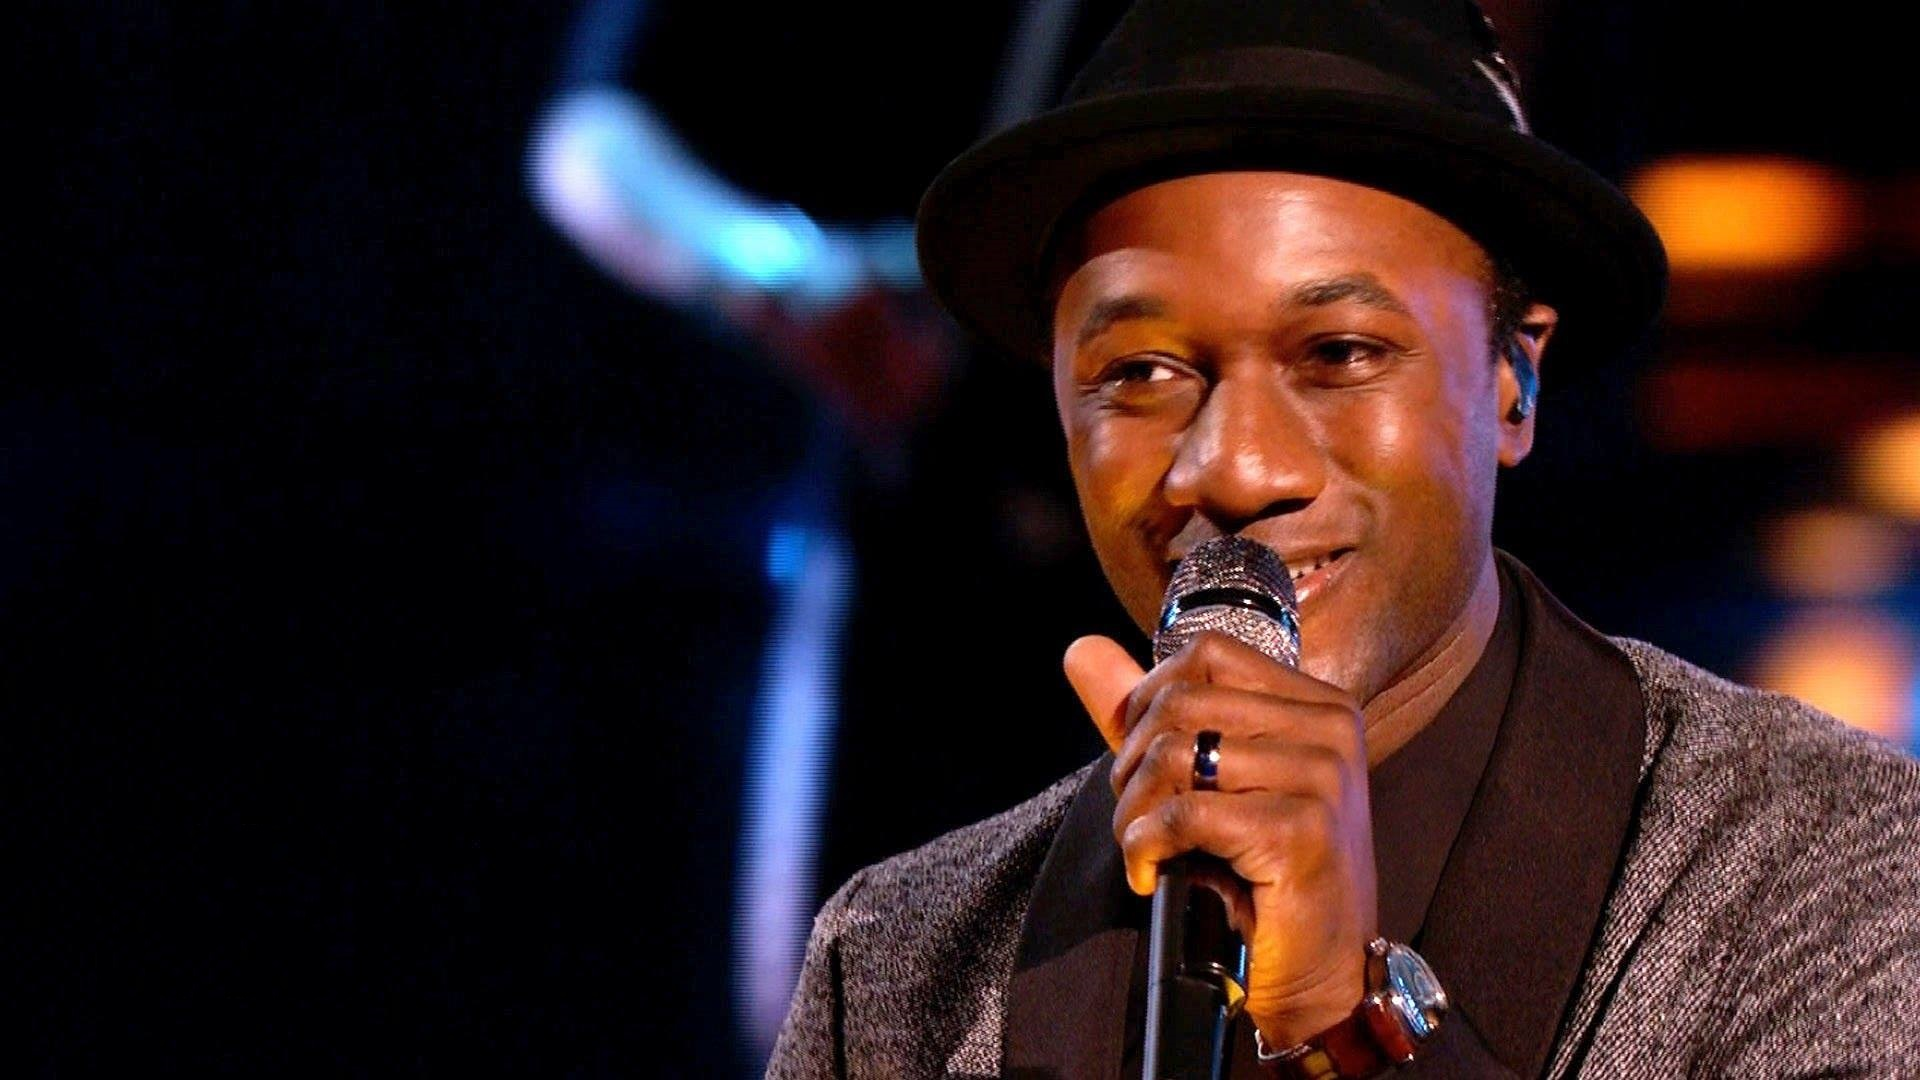 The Man Aloe Blacc Wallpaper